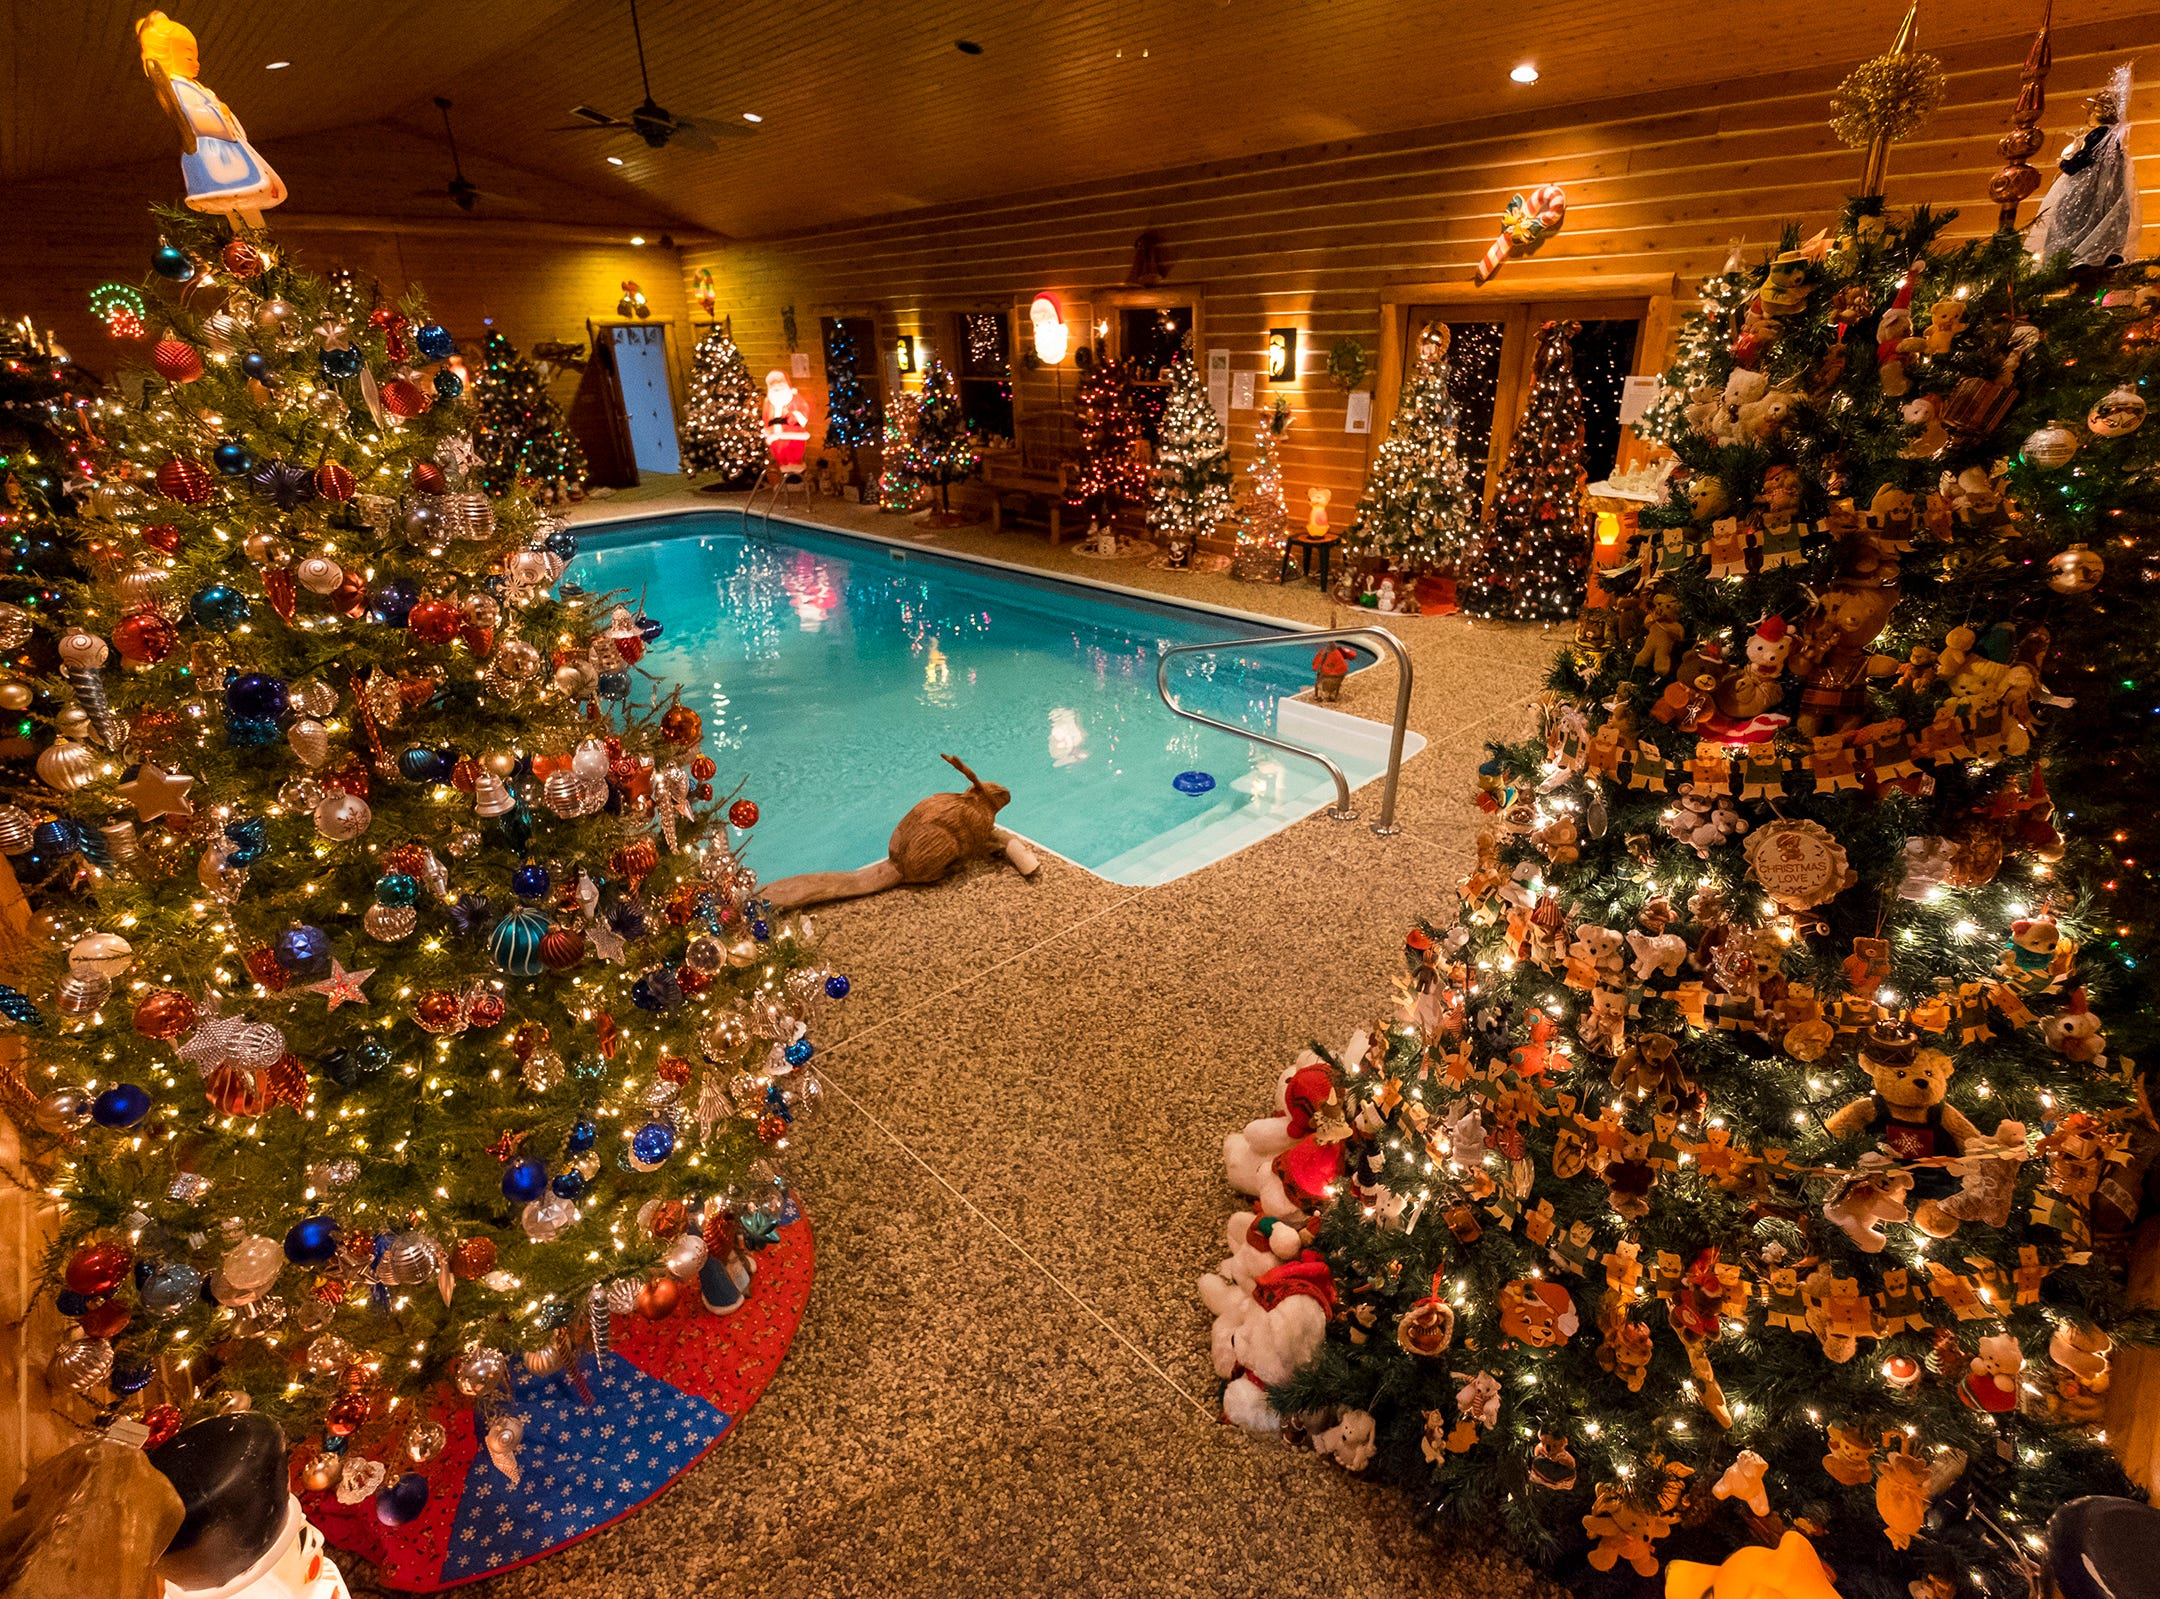 Different themed Christmas trees are arranged around the pool in Al and Diane Kodet's home for the annual History of the Christmas Tree Walk in Algonac.